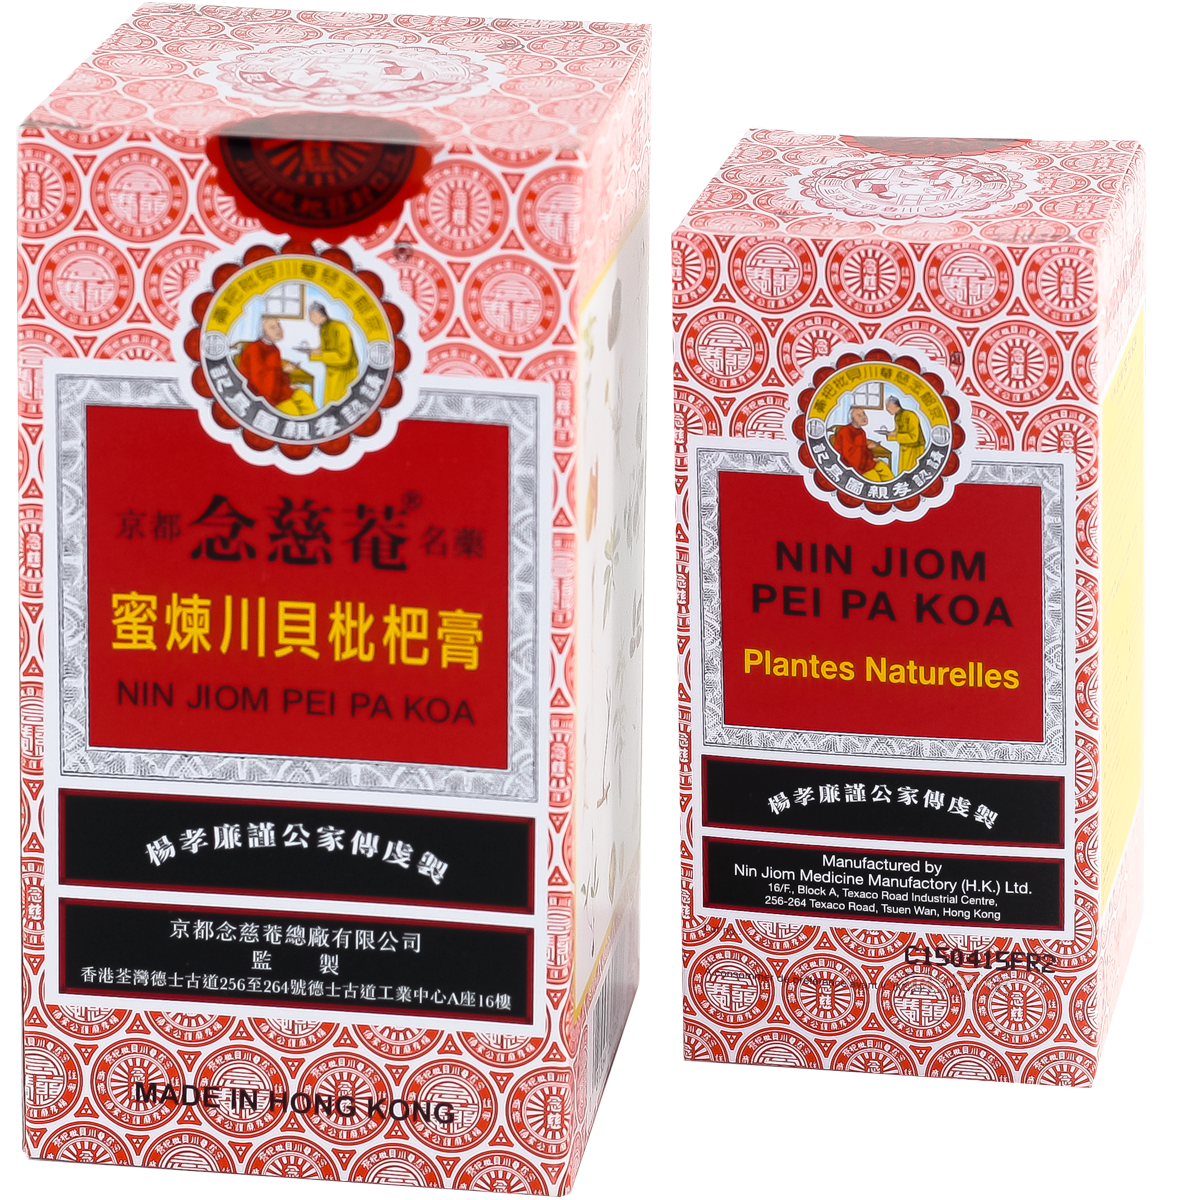 Ninjiom Peipakoa (150ml & 300ml) Image